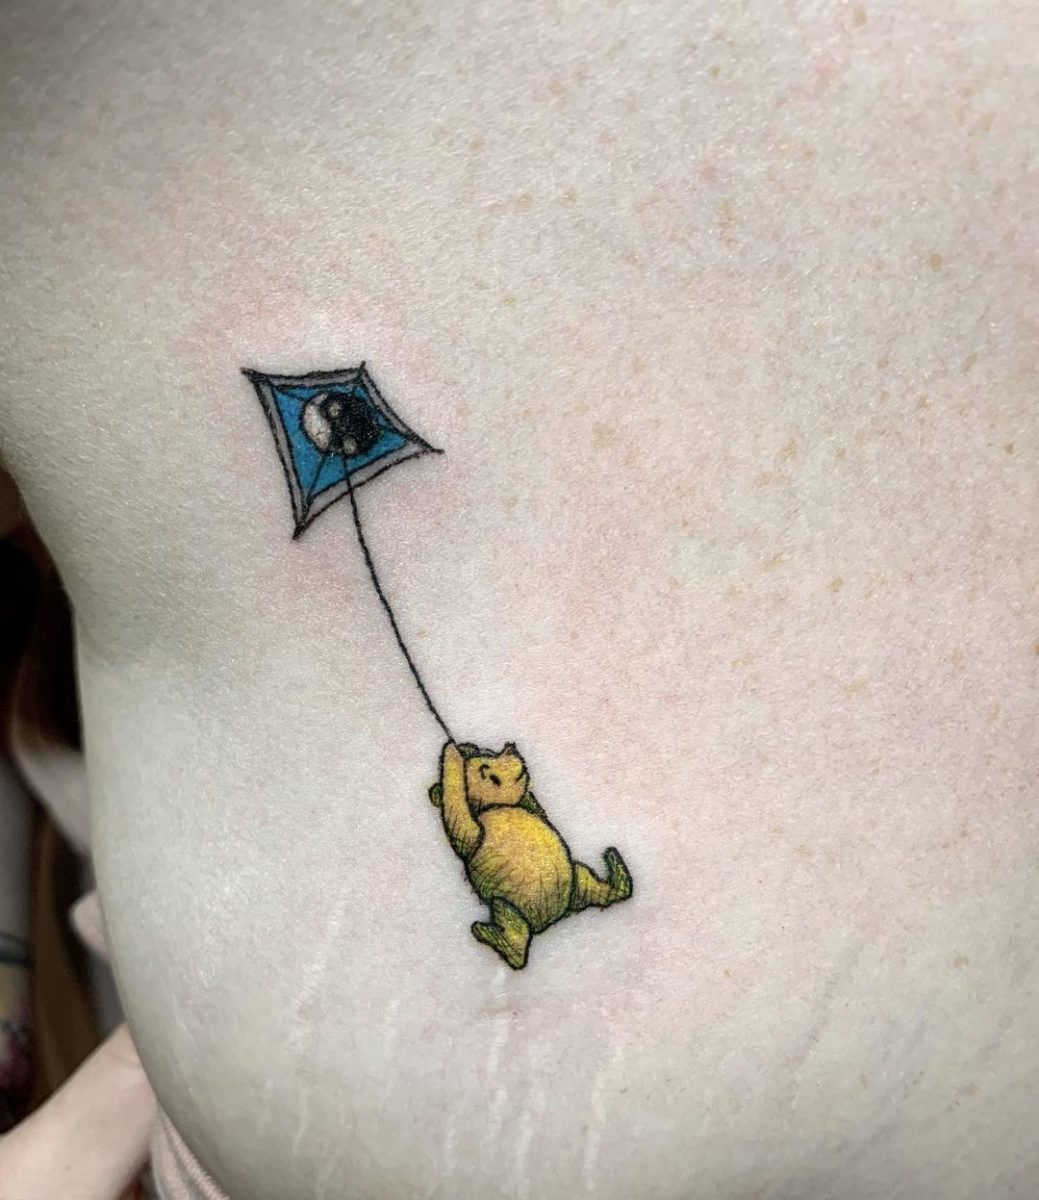 133 small tattoos you will want to put on your body / you will want to copy